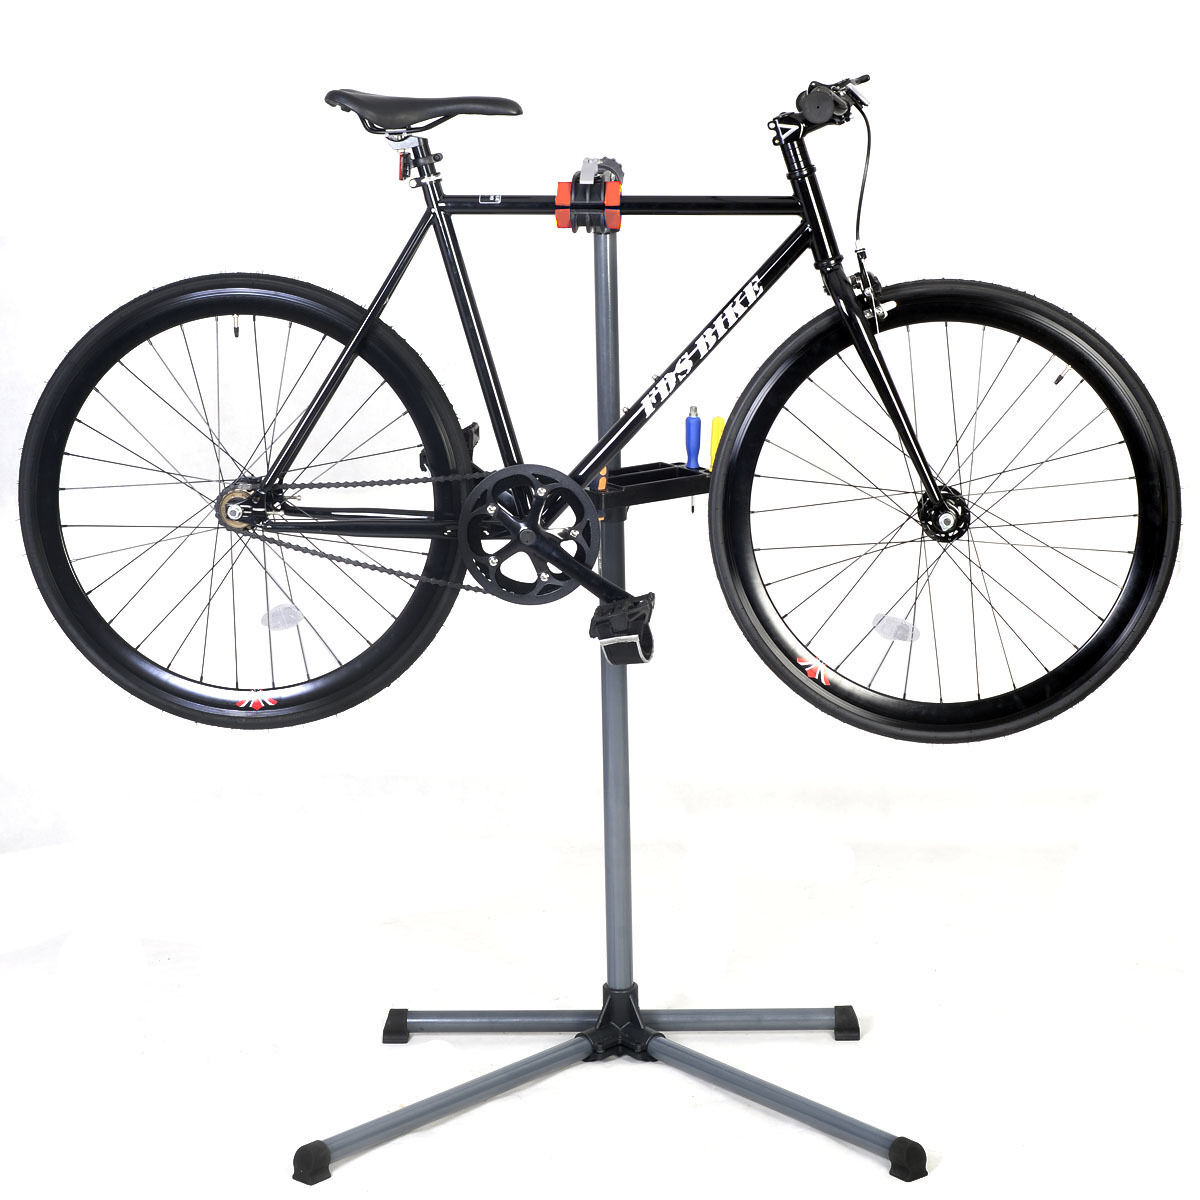 fahrrad montagest nder test vergleich fahrrad. Black Bedroom Furniture Sets. Home Design Ideas